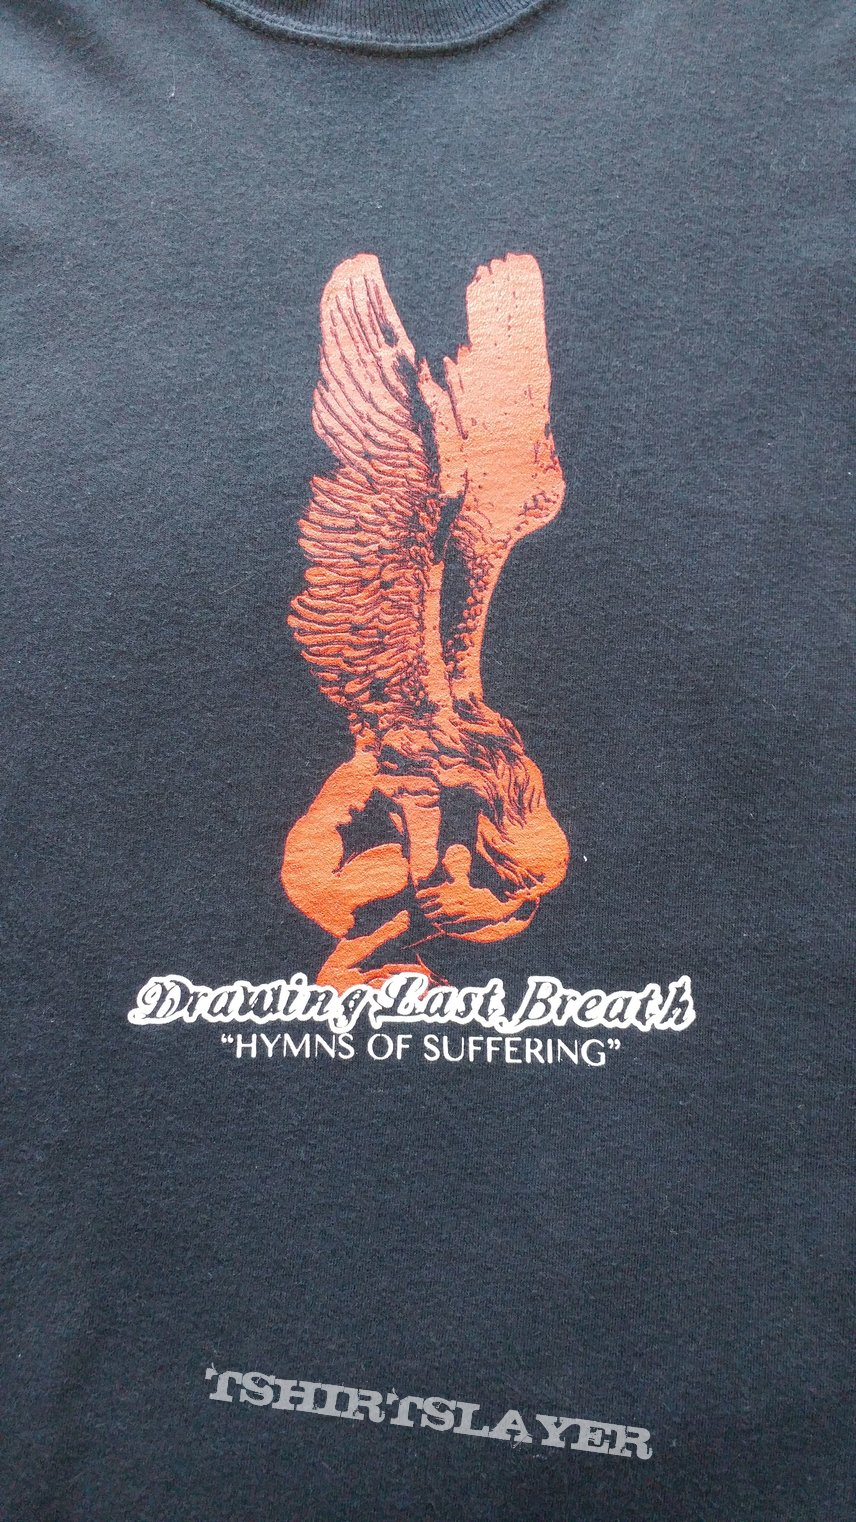 Drawing Last Breath Hymns of Suffering shirt